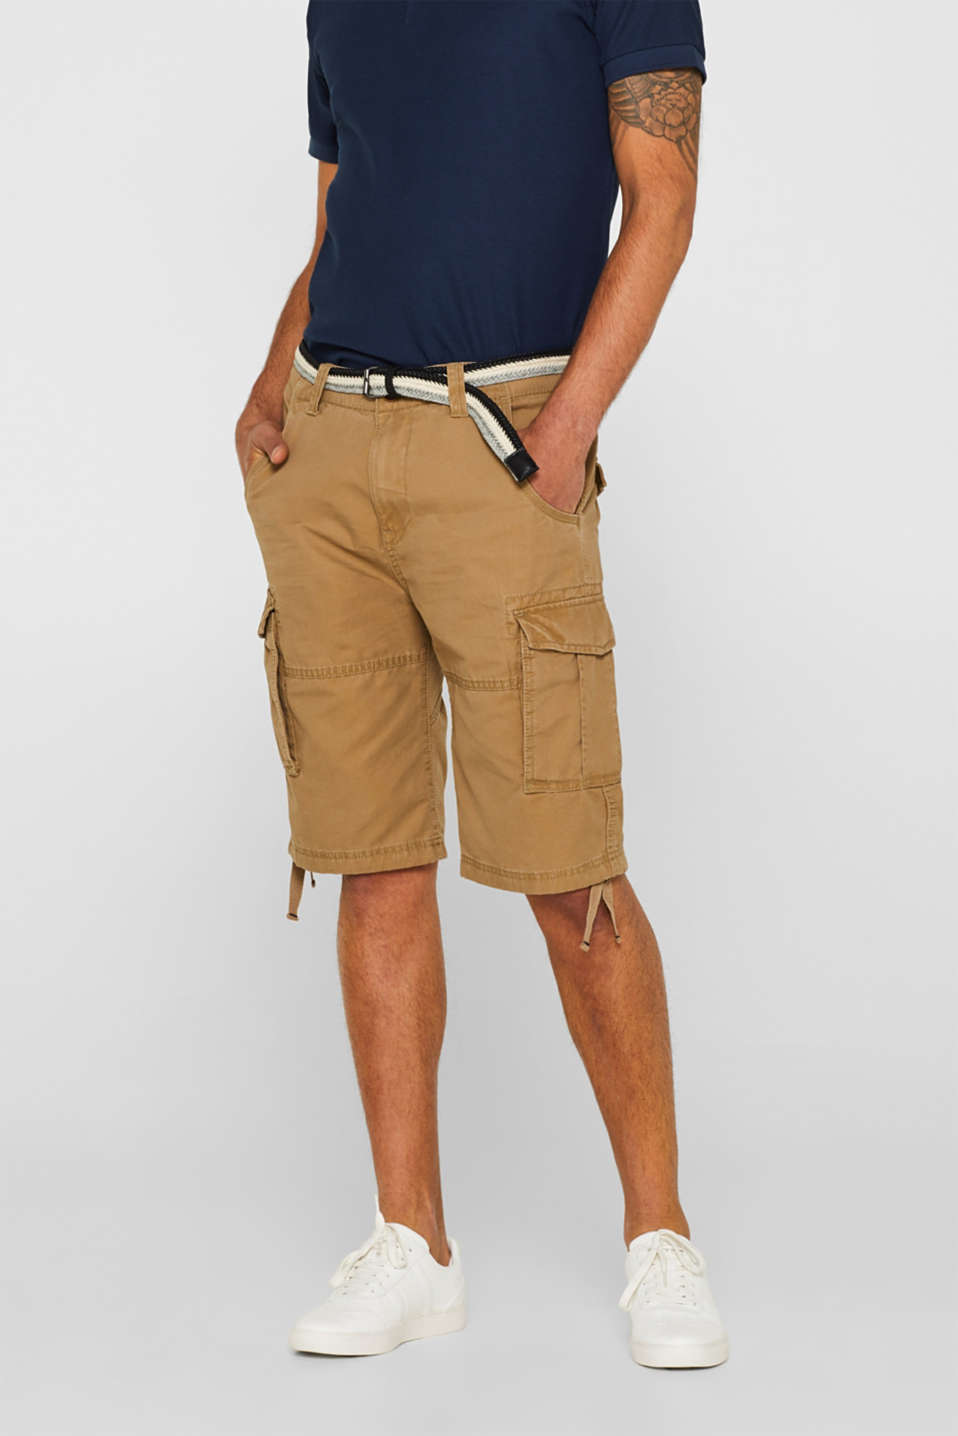 edc - Cargo shorts in 100% cotton